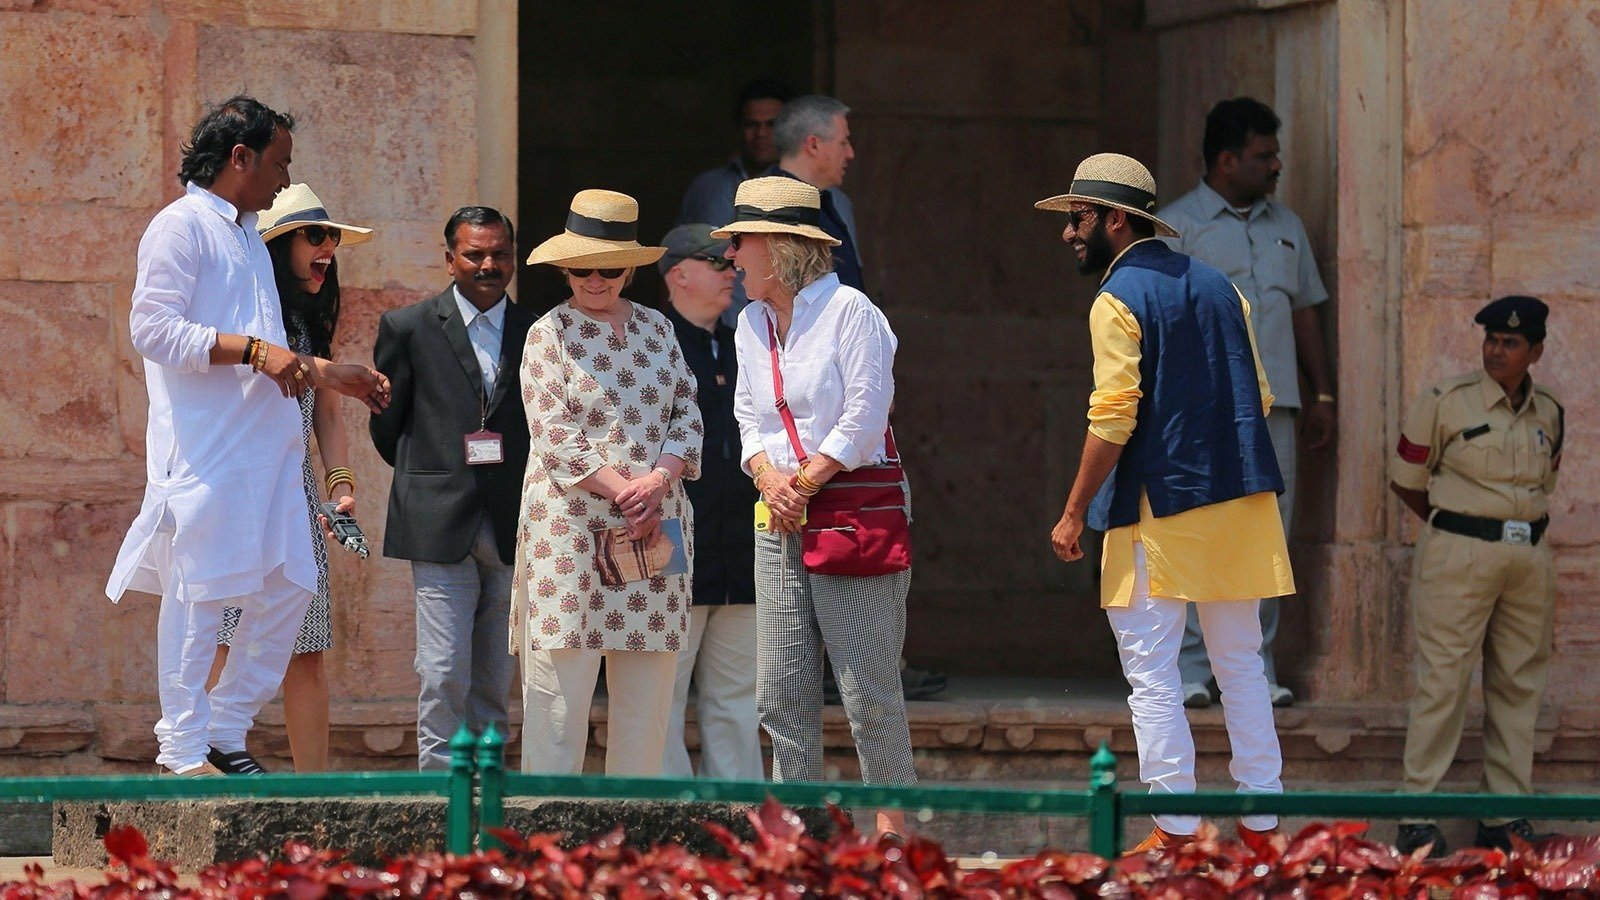 Former US politician Hillary Clinton tours the Jahaj Mahal part of an abandoned royal palace complex while on a personal trip to the ancient city of Mandu in India's Madhya Pradesh state